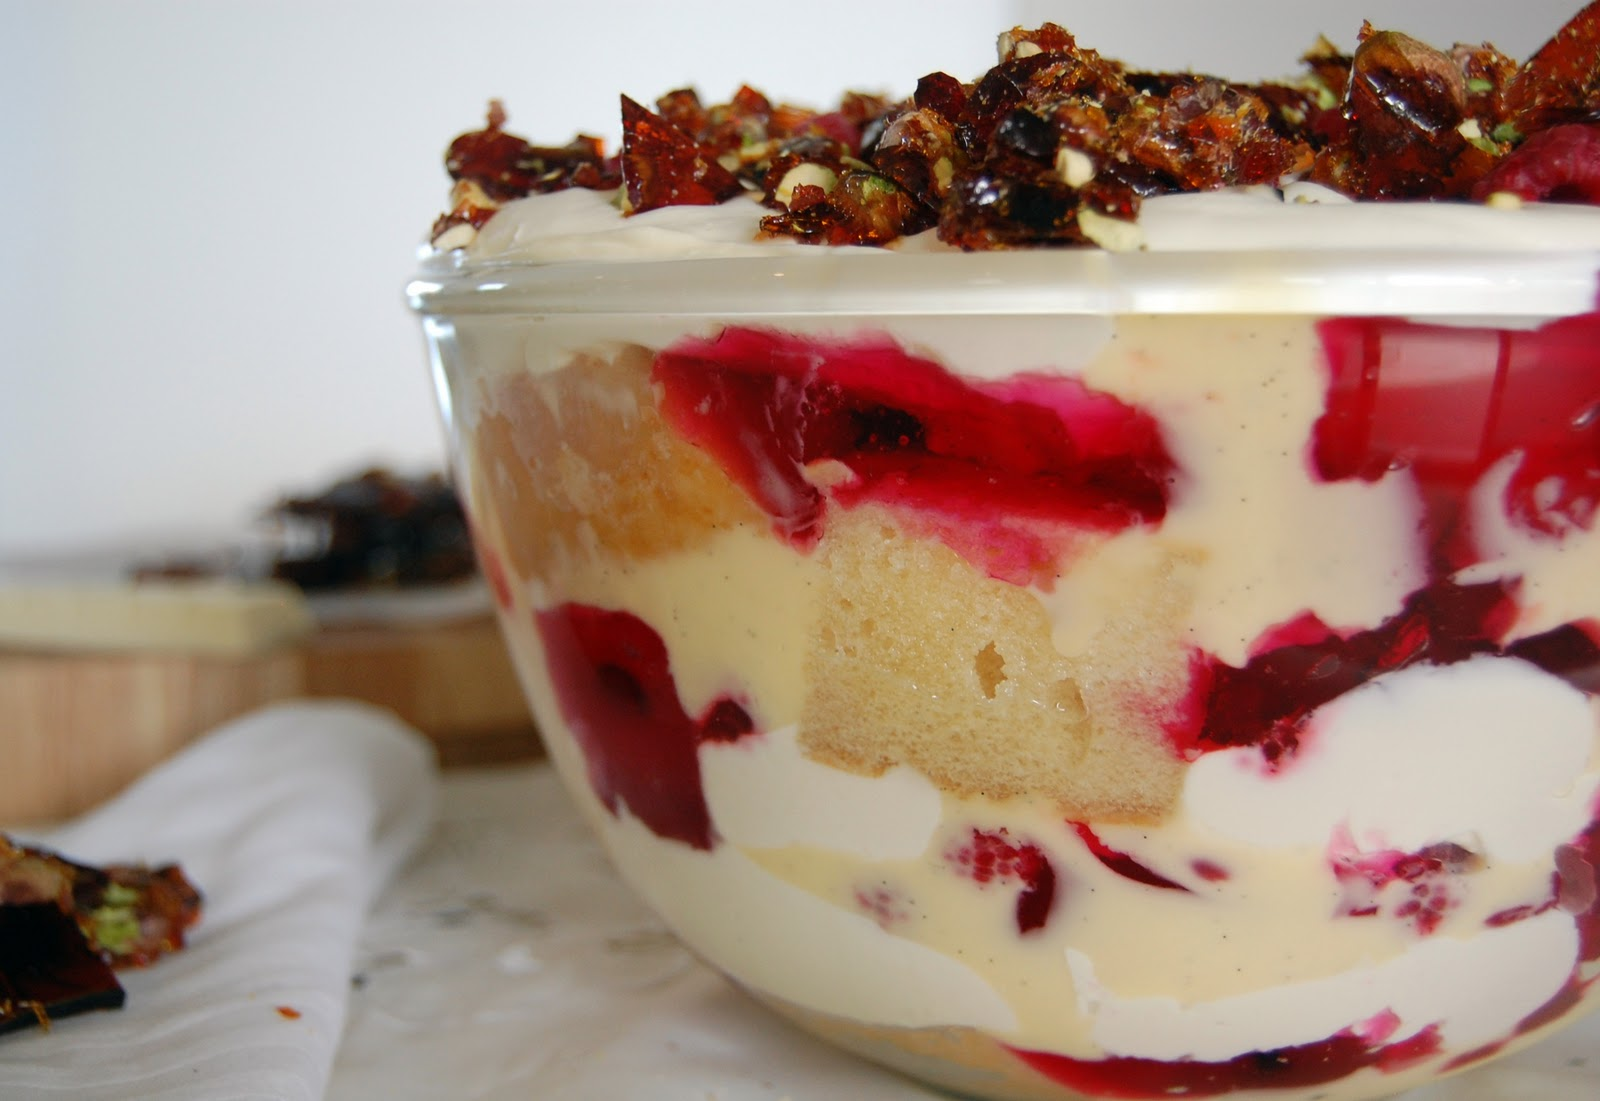 kayla marie's kitchen: Raspberry and White Chocolate Trifle with ...